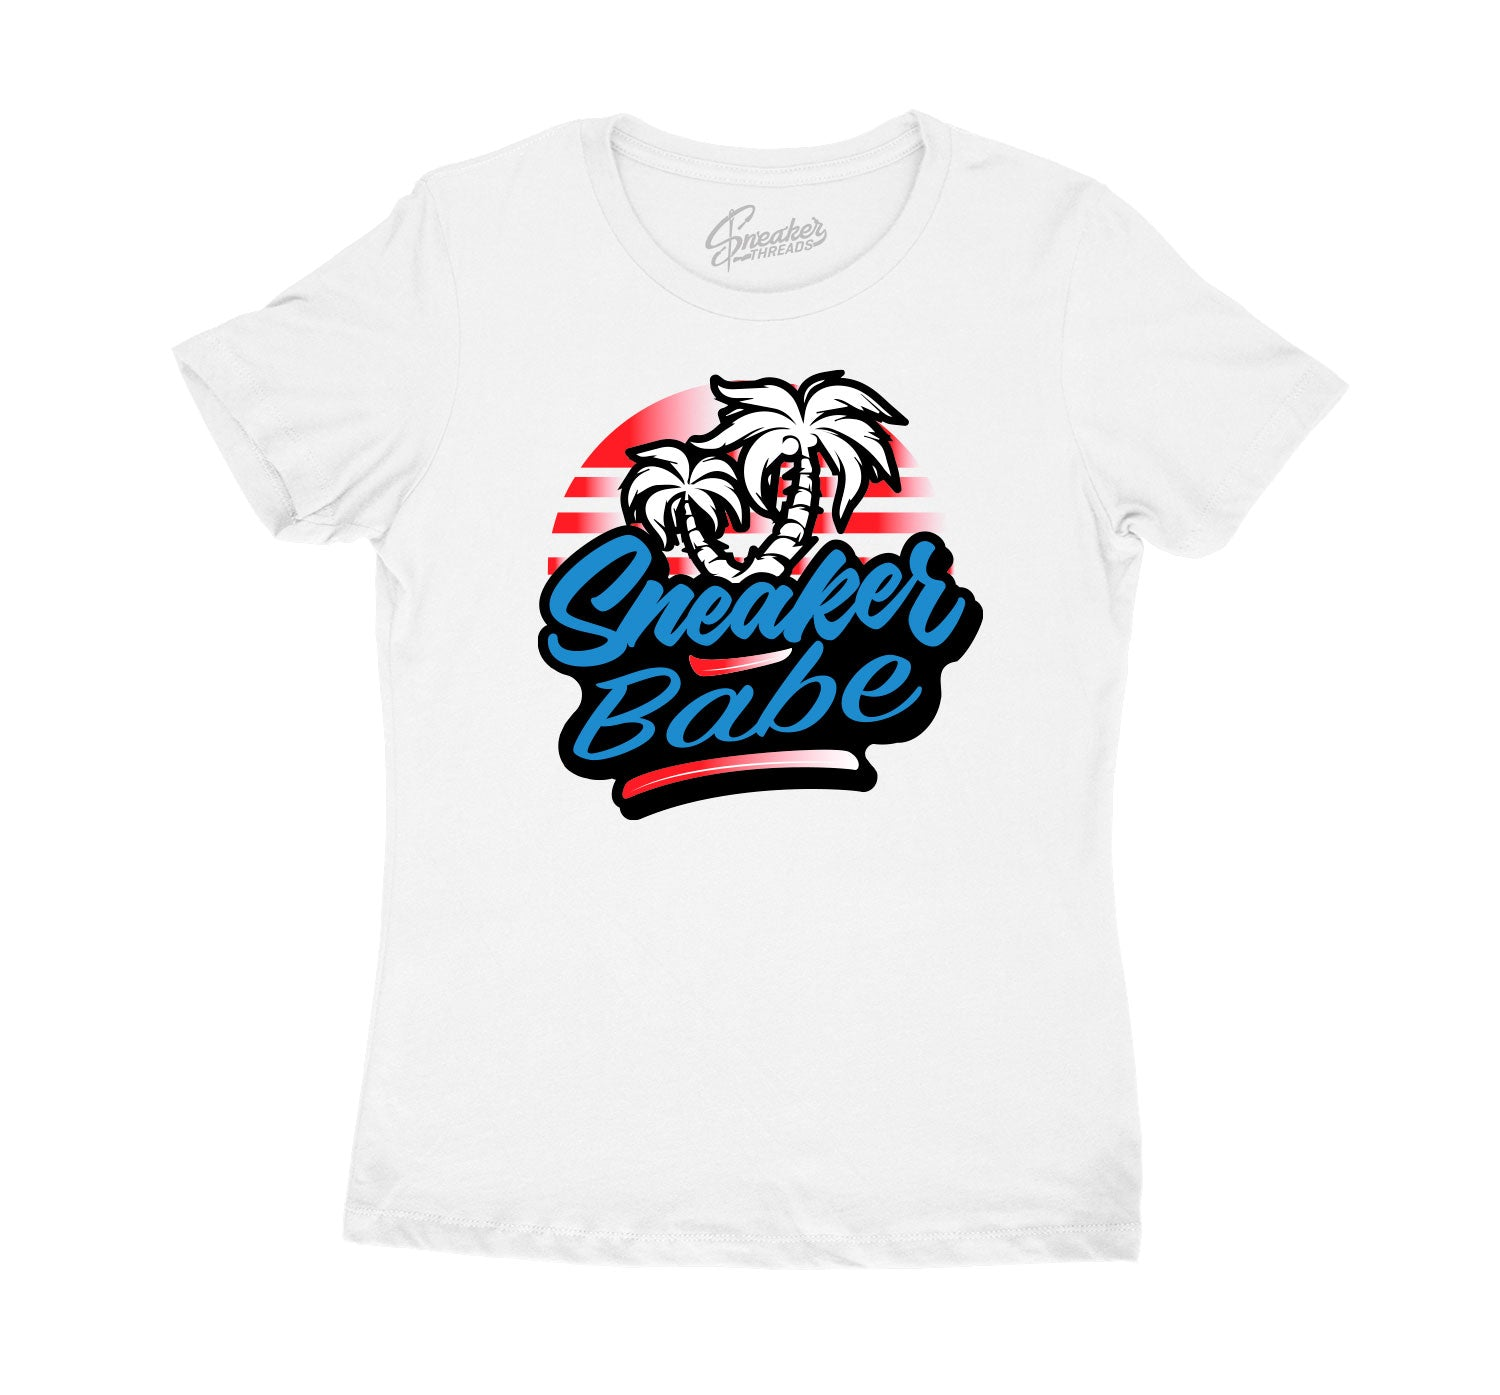 Womens - NC To CHI 1 Sneaker Babe Palms Shirt